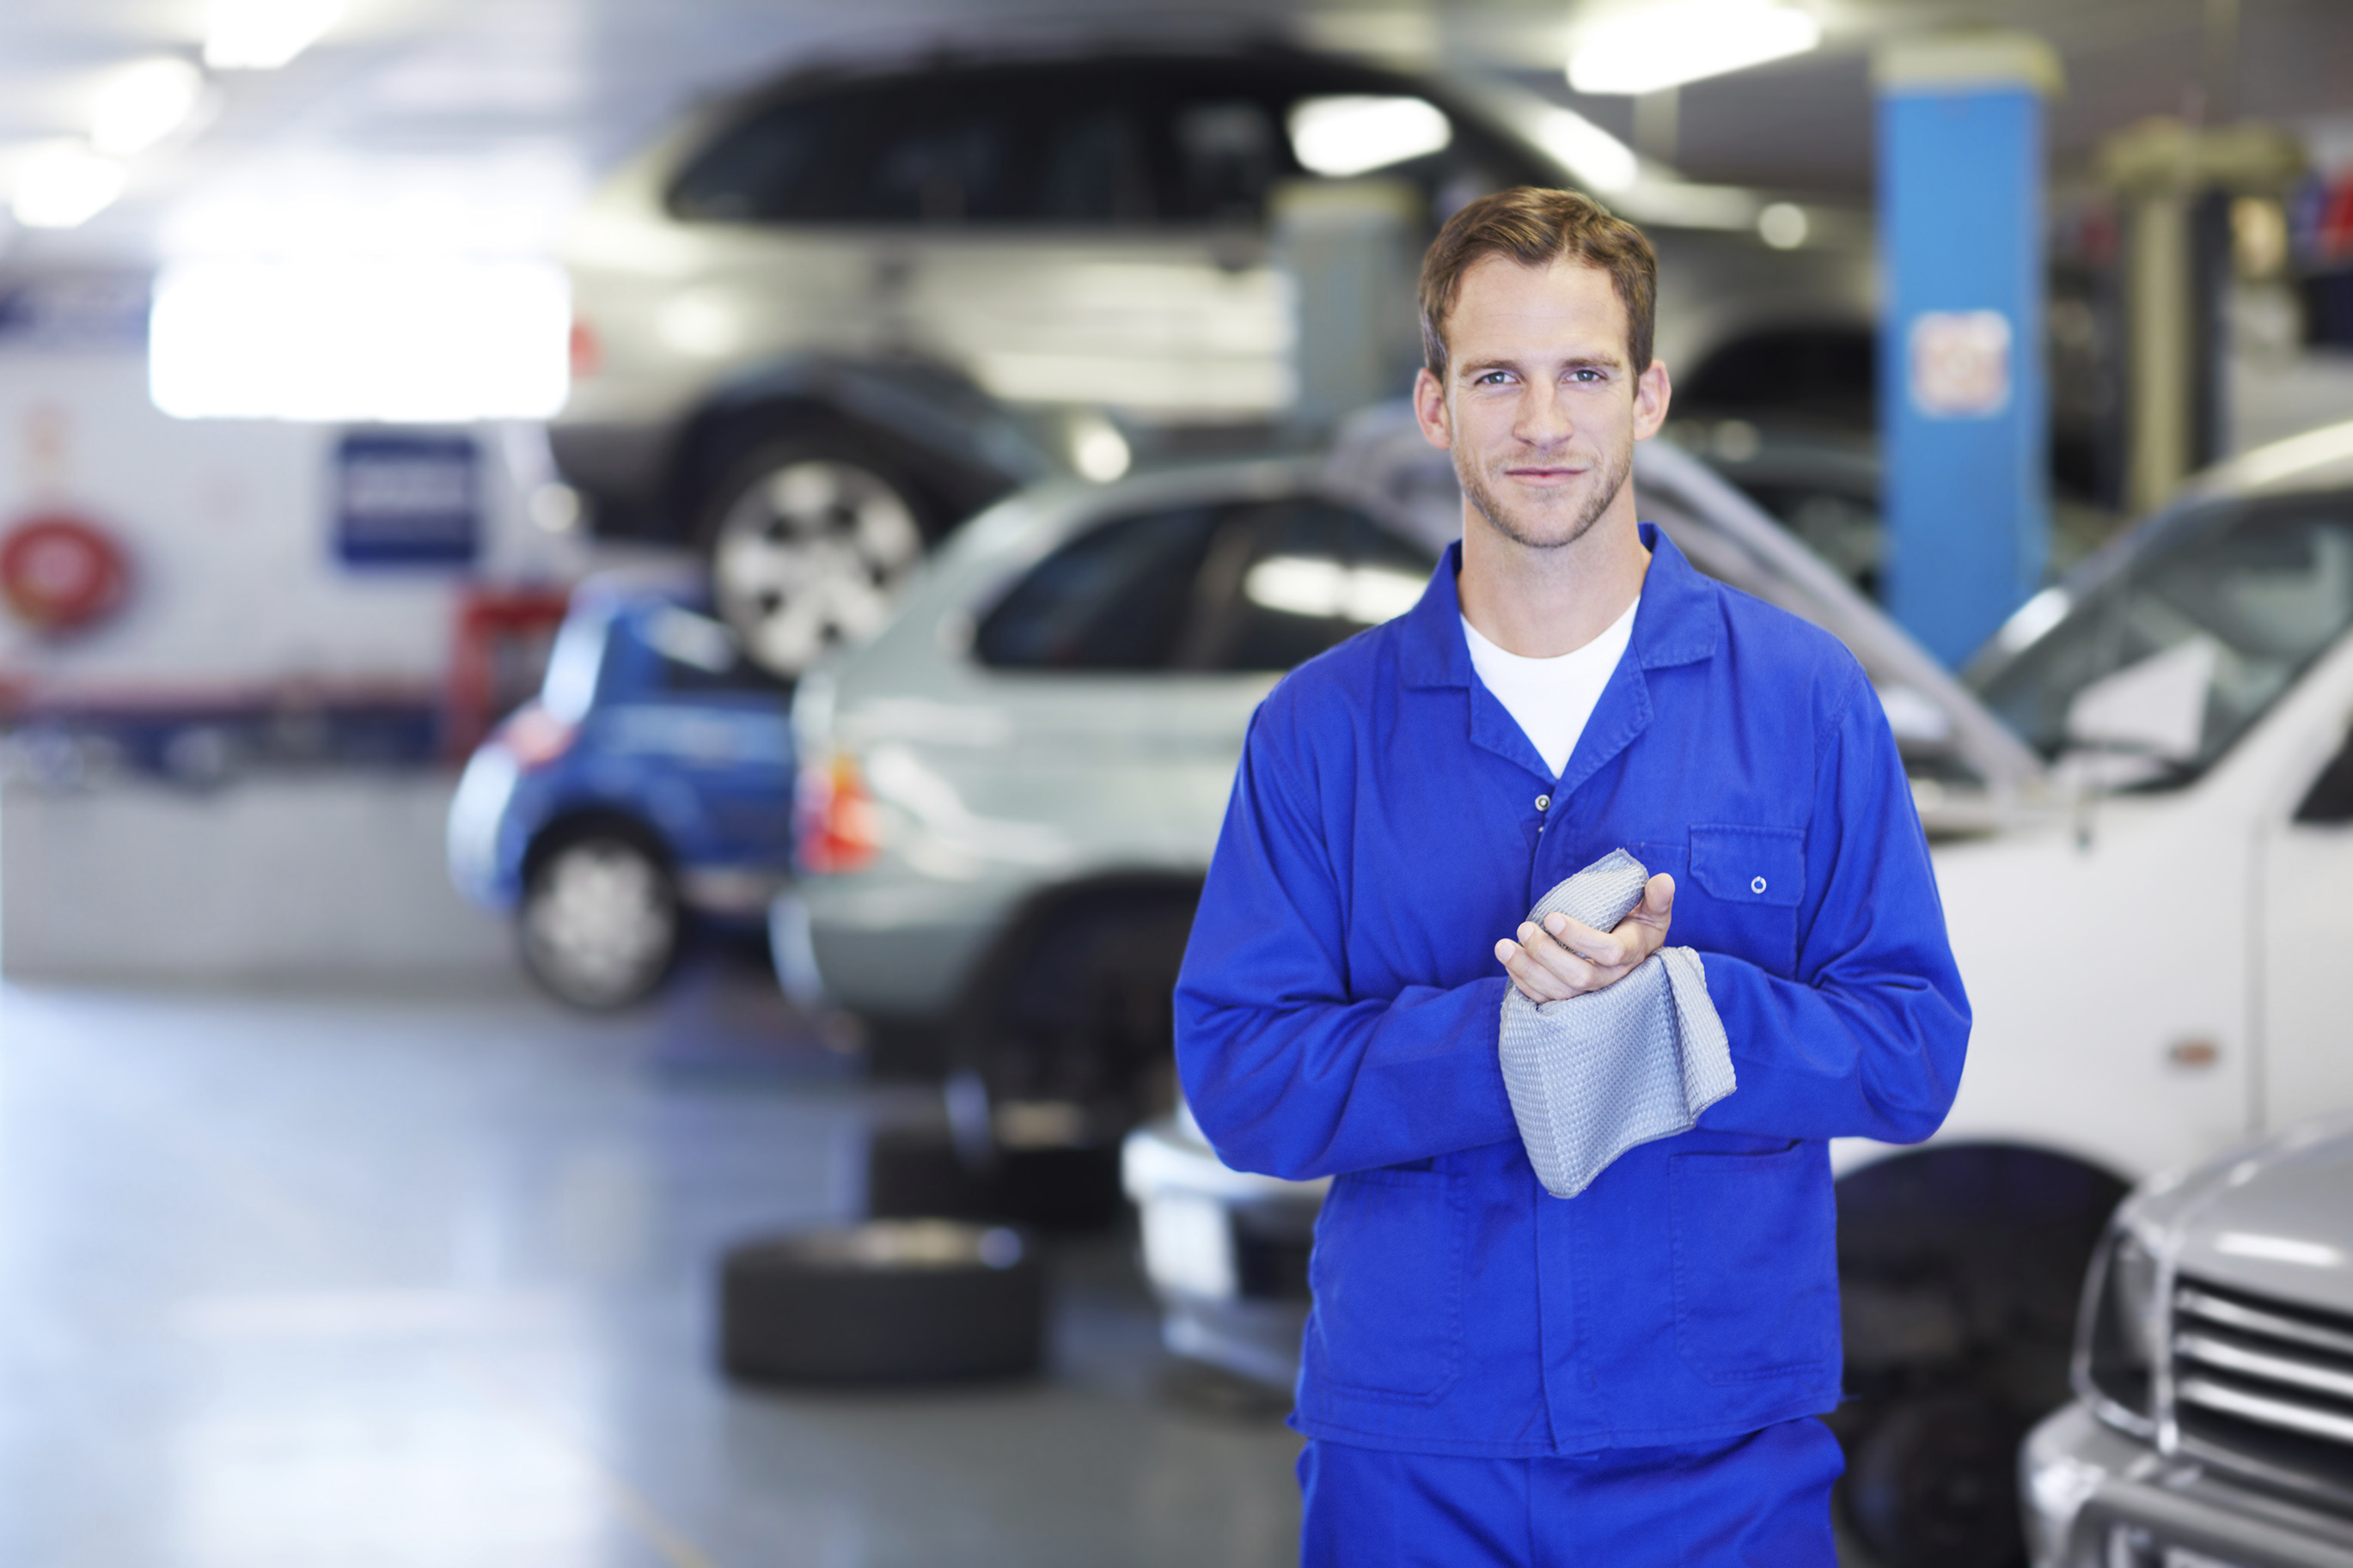 Why Service at the Dealership?